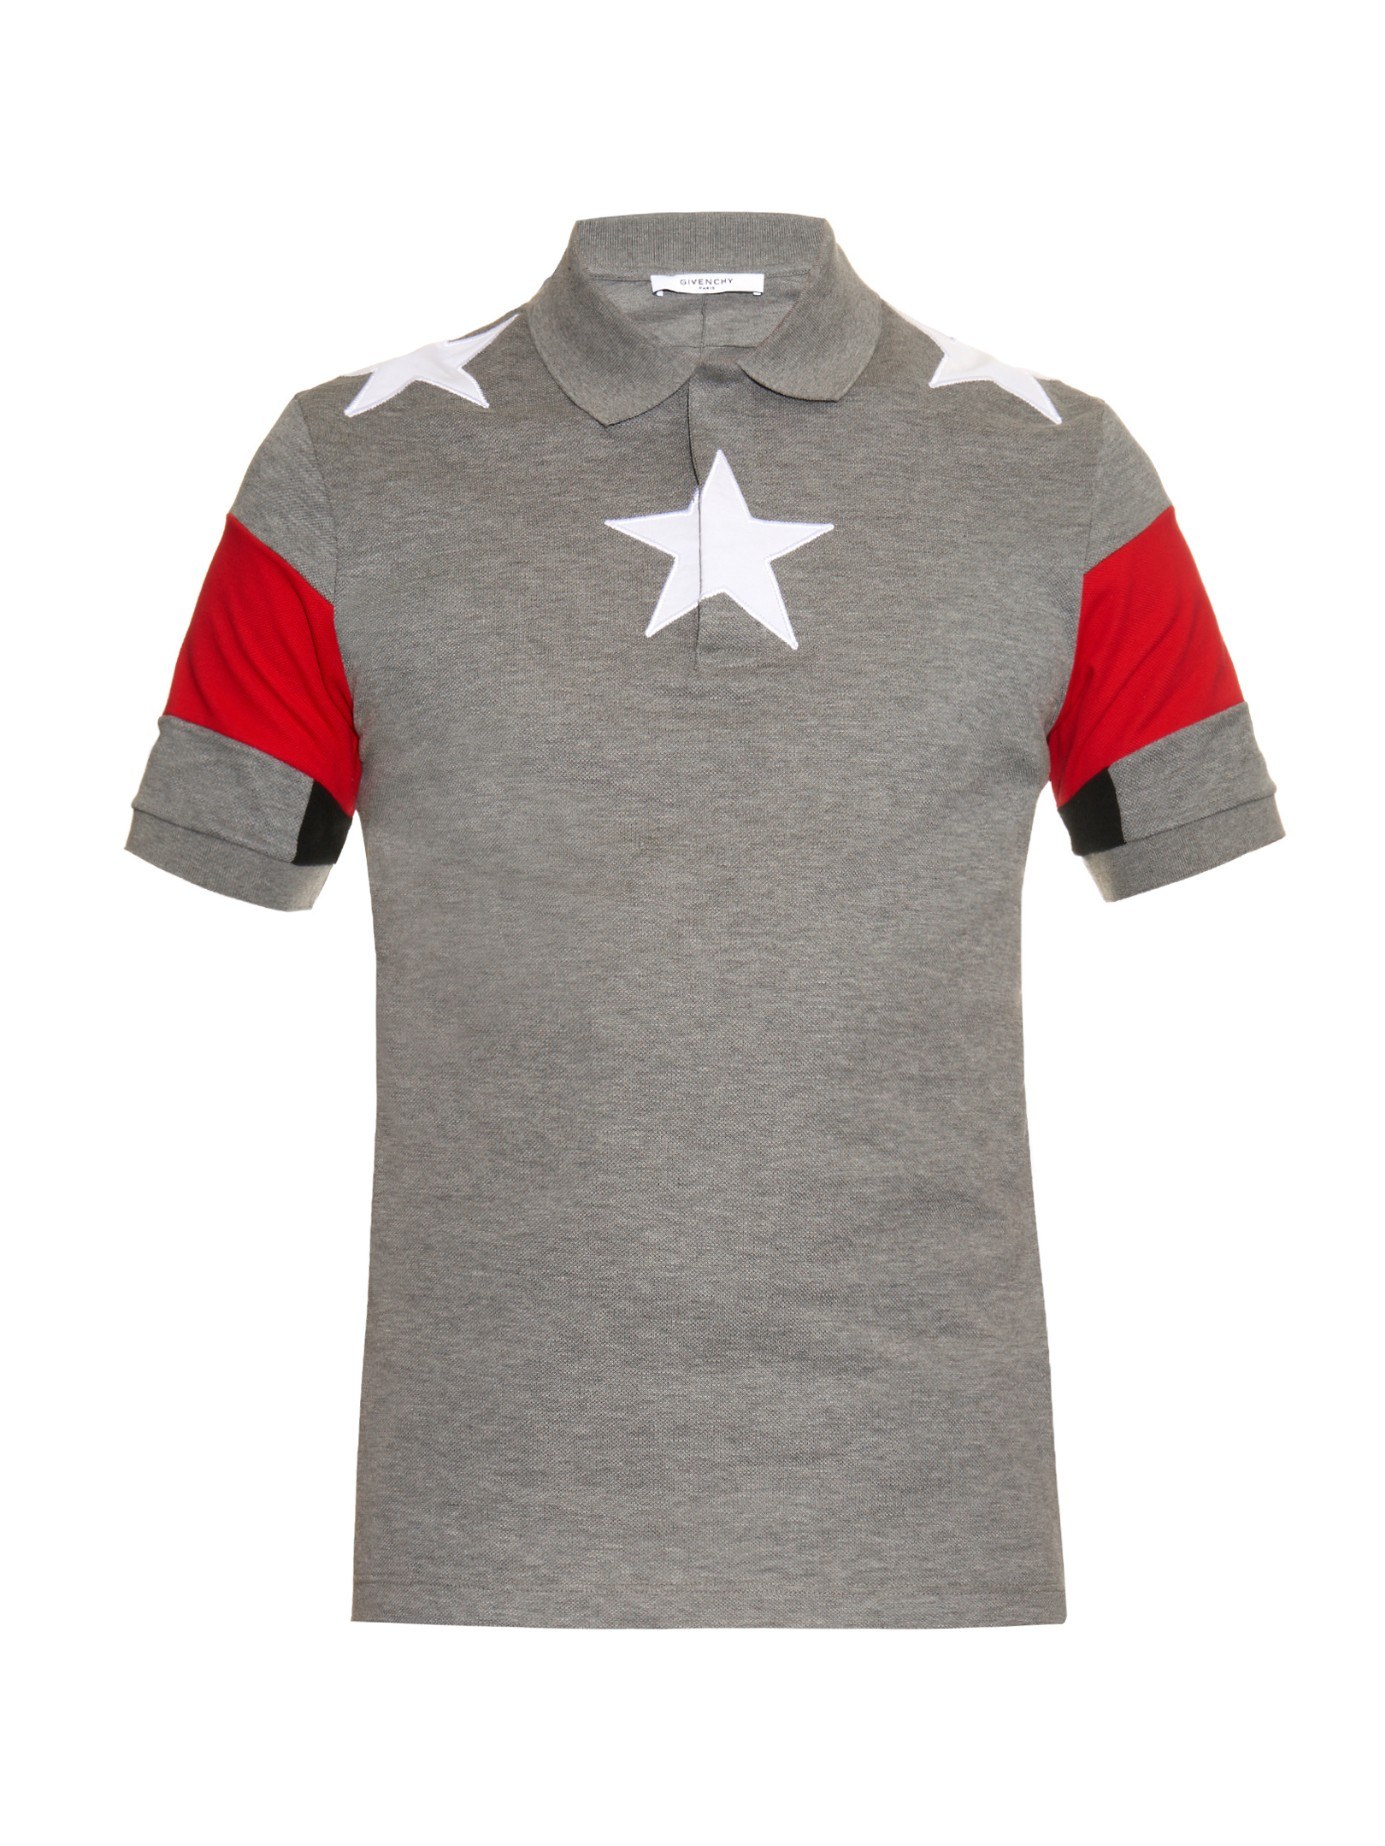 Givenchy Cuban Fit Star Embroidered Polo Shirt In Gray For